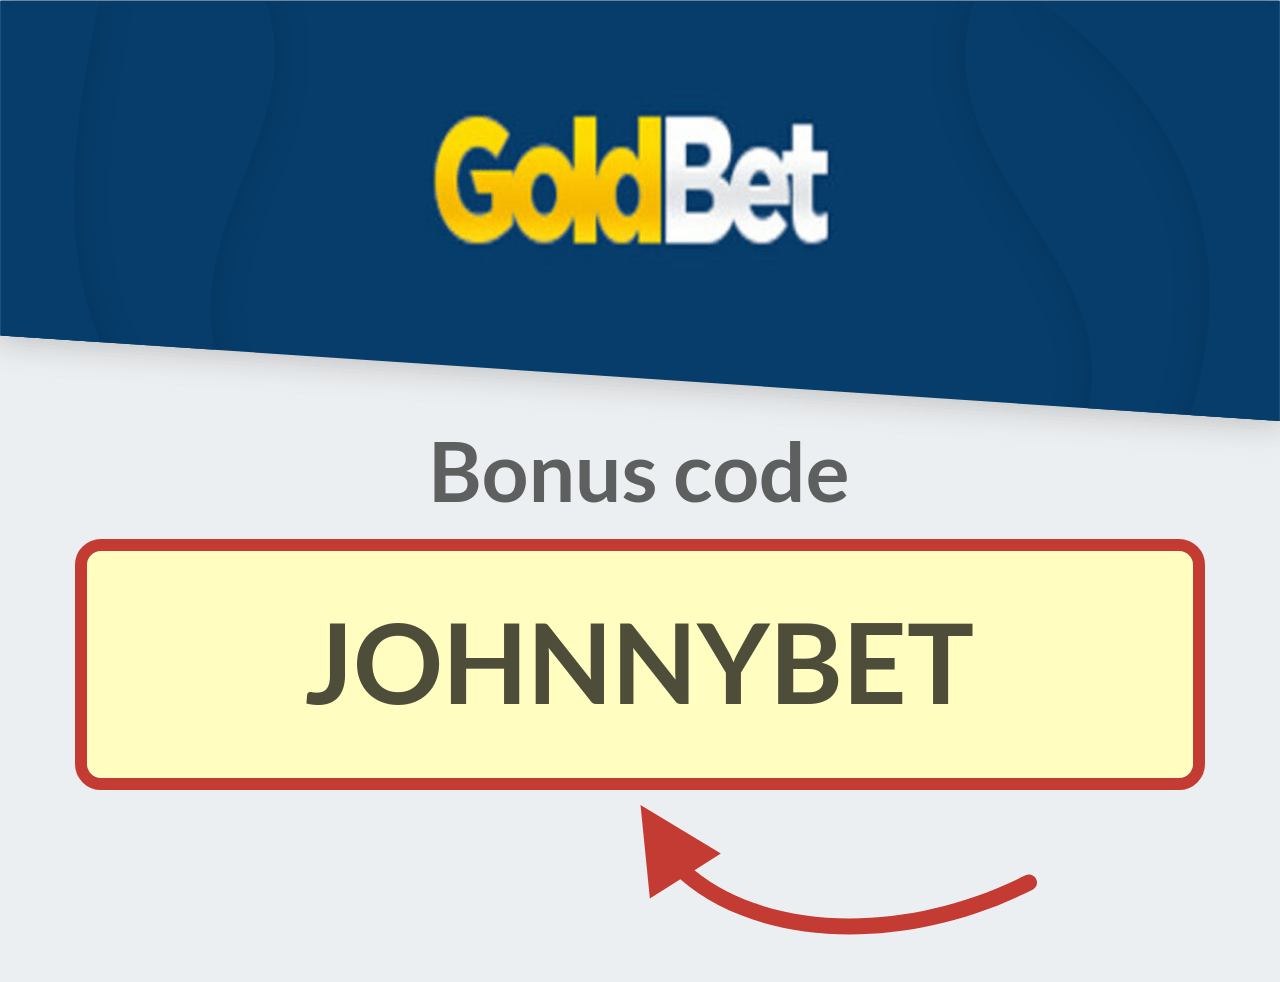 Goldbet Bonus Code